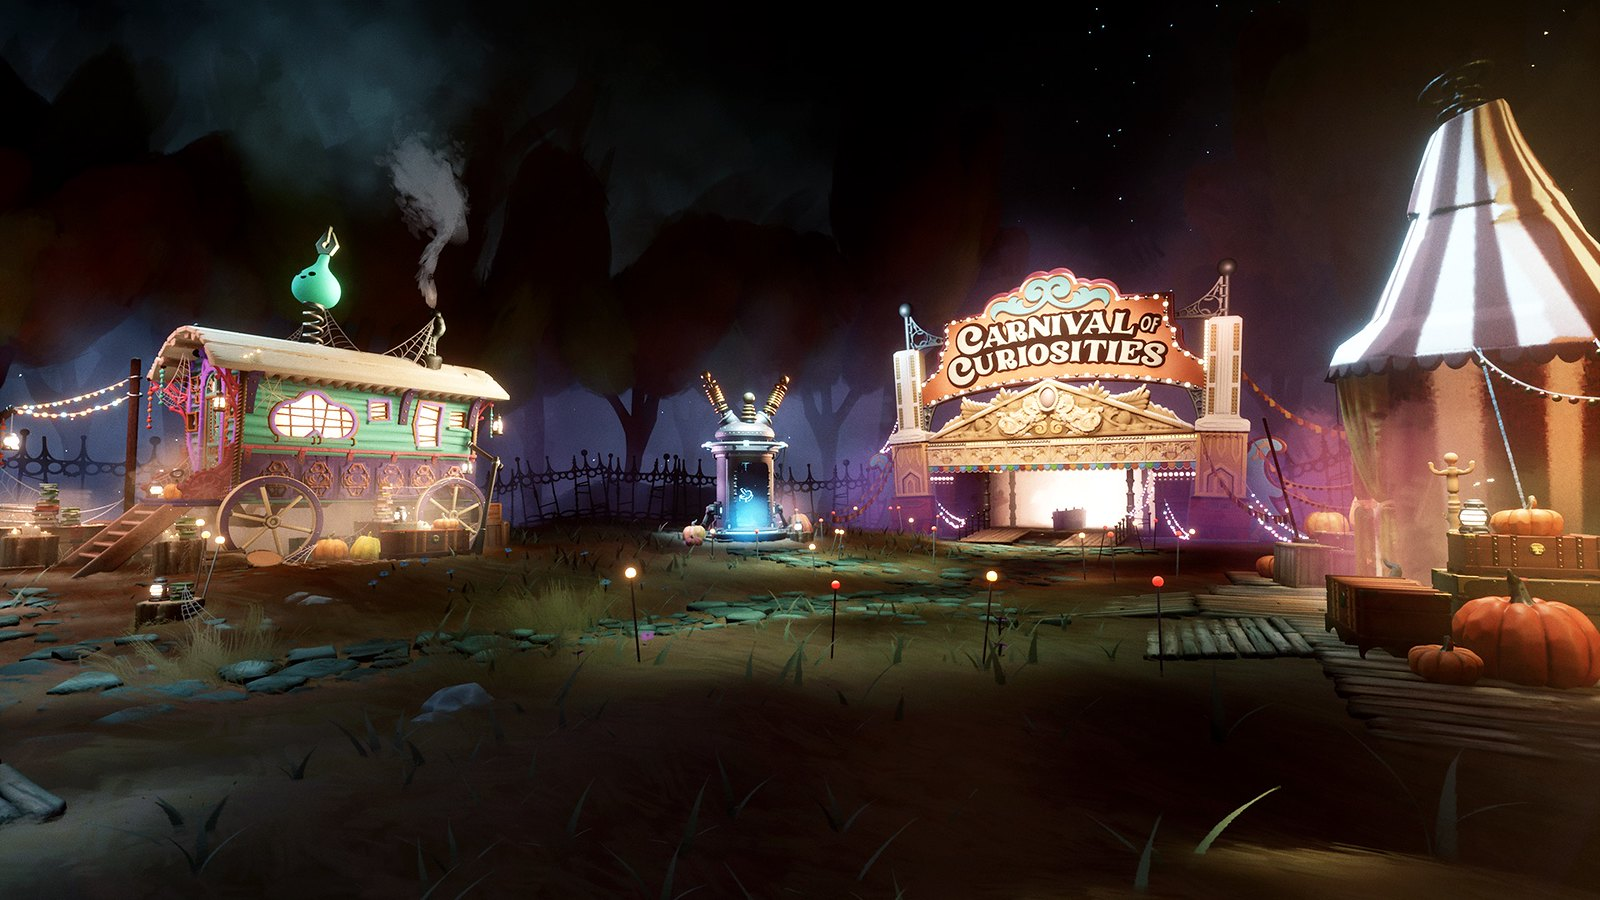 Playstation News: All aboard for coMmunity collaboration All Hallows' Dreams: Ghost Train